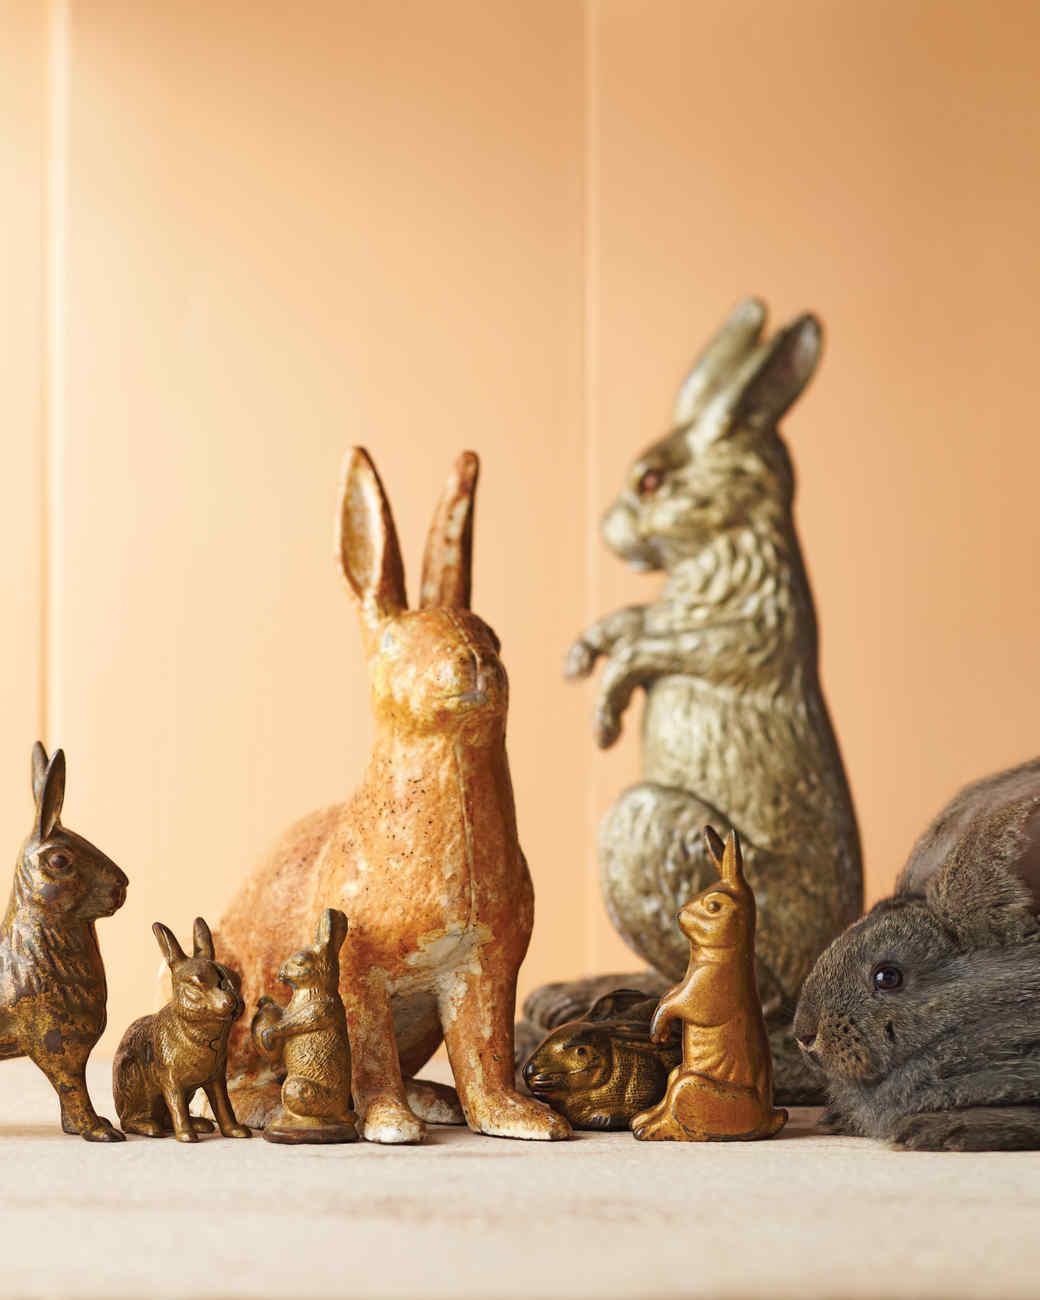 mld106987_0411_bunnies_doorstop_iron.jpg